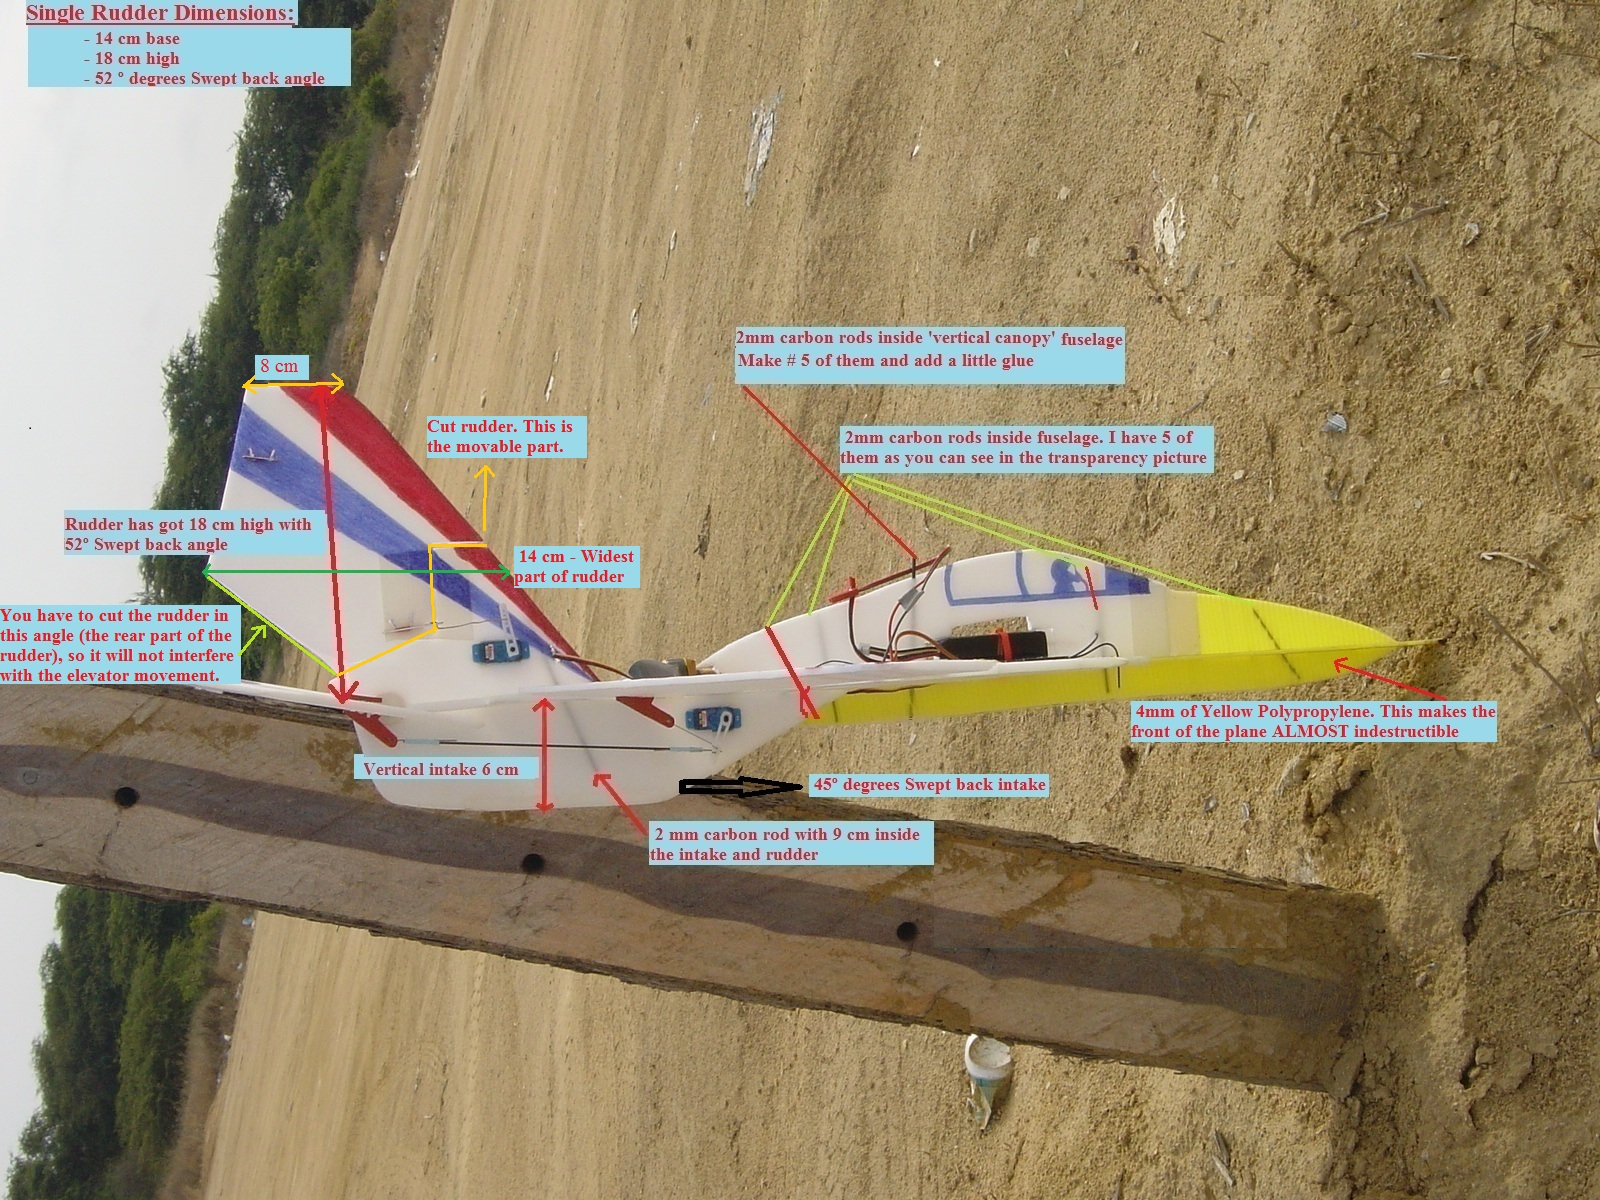 Click image for larger version  Name:SU 47 V2 JB Side View.jpg Views:52 Size:800.3 KB ID:1959028